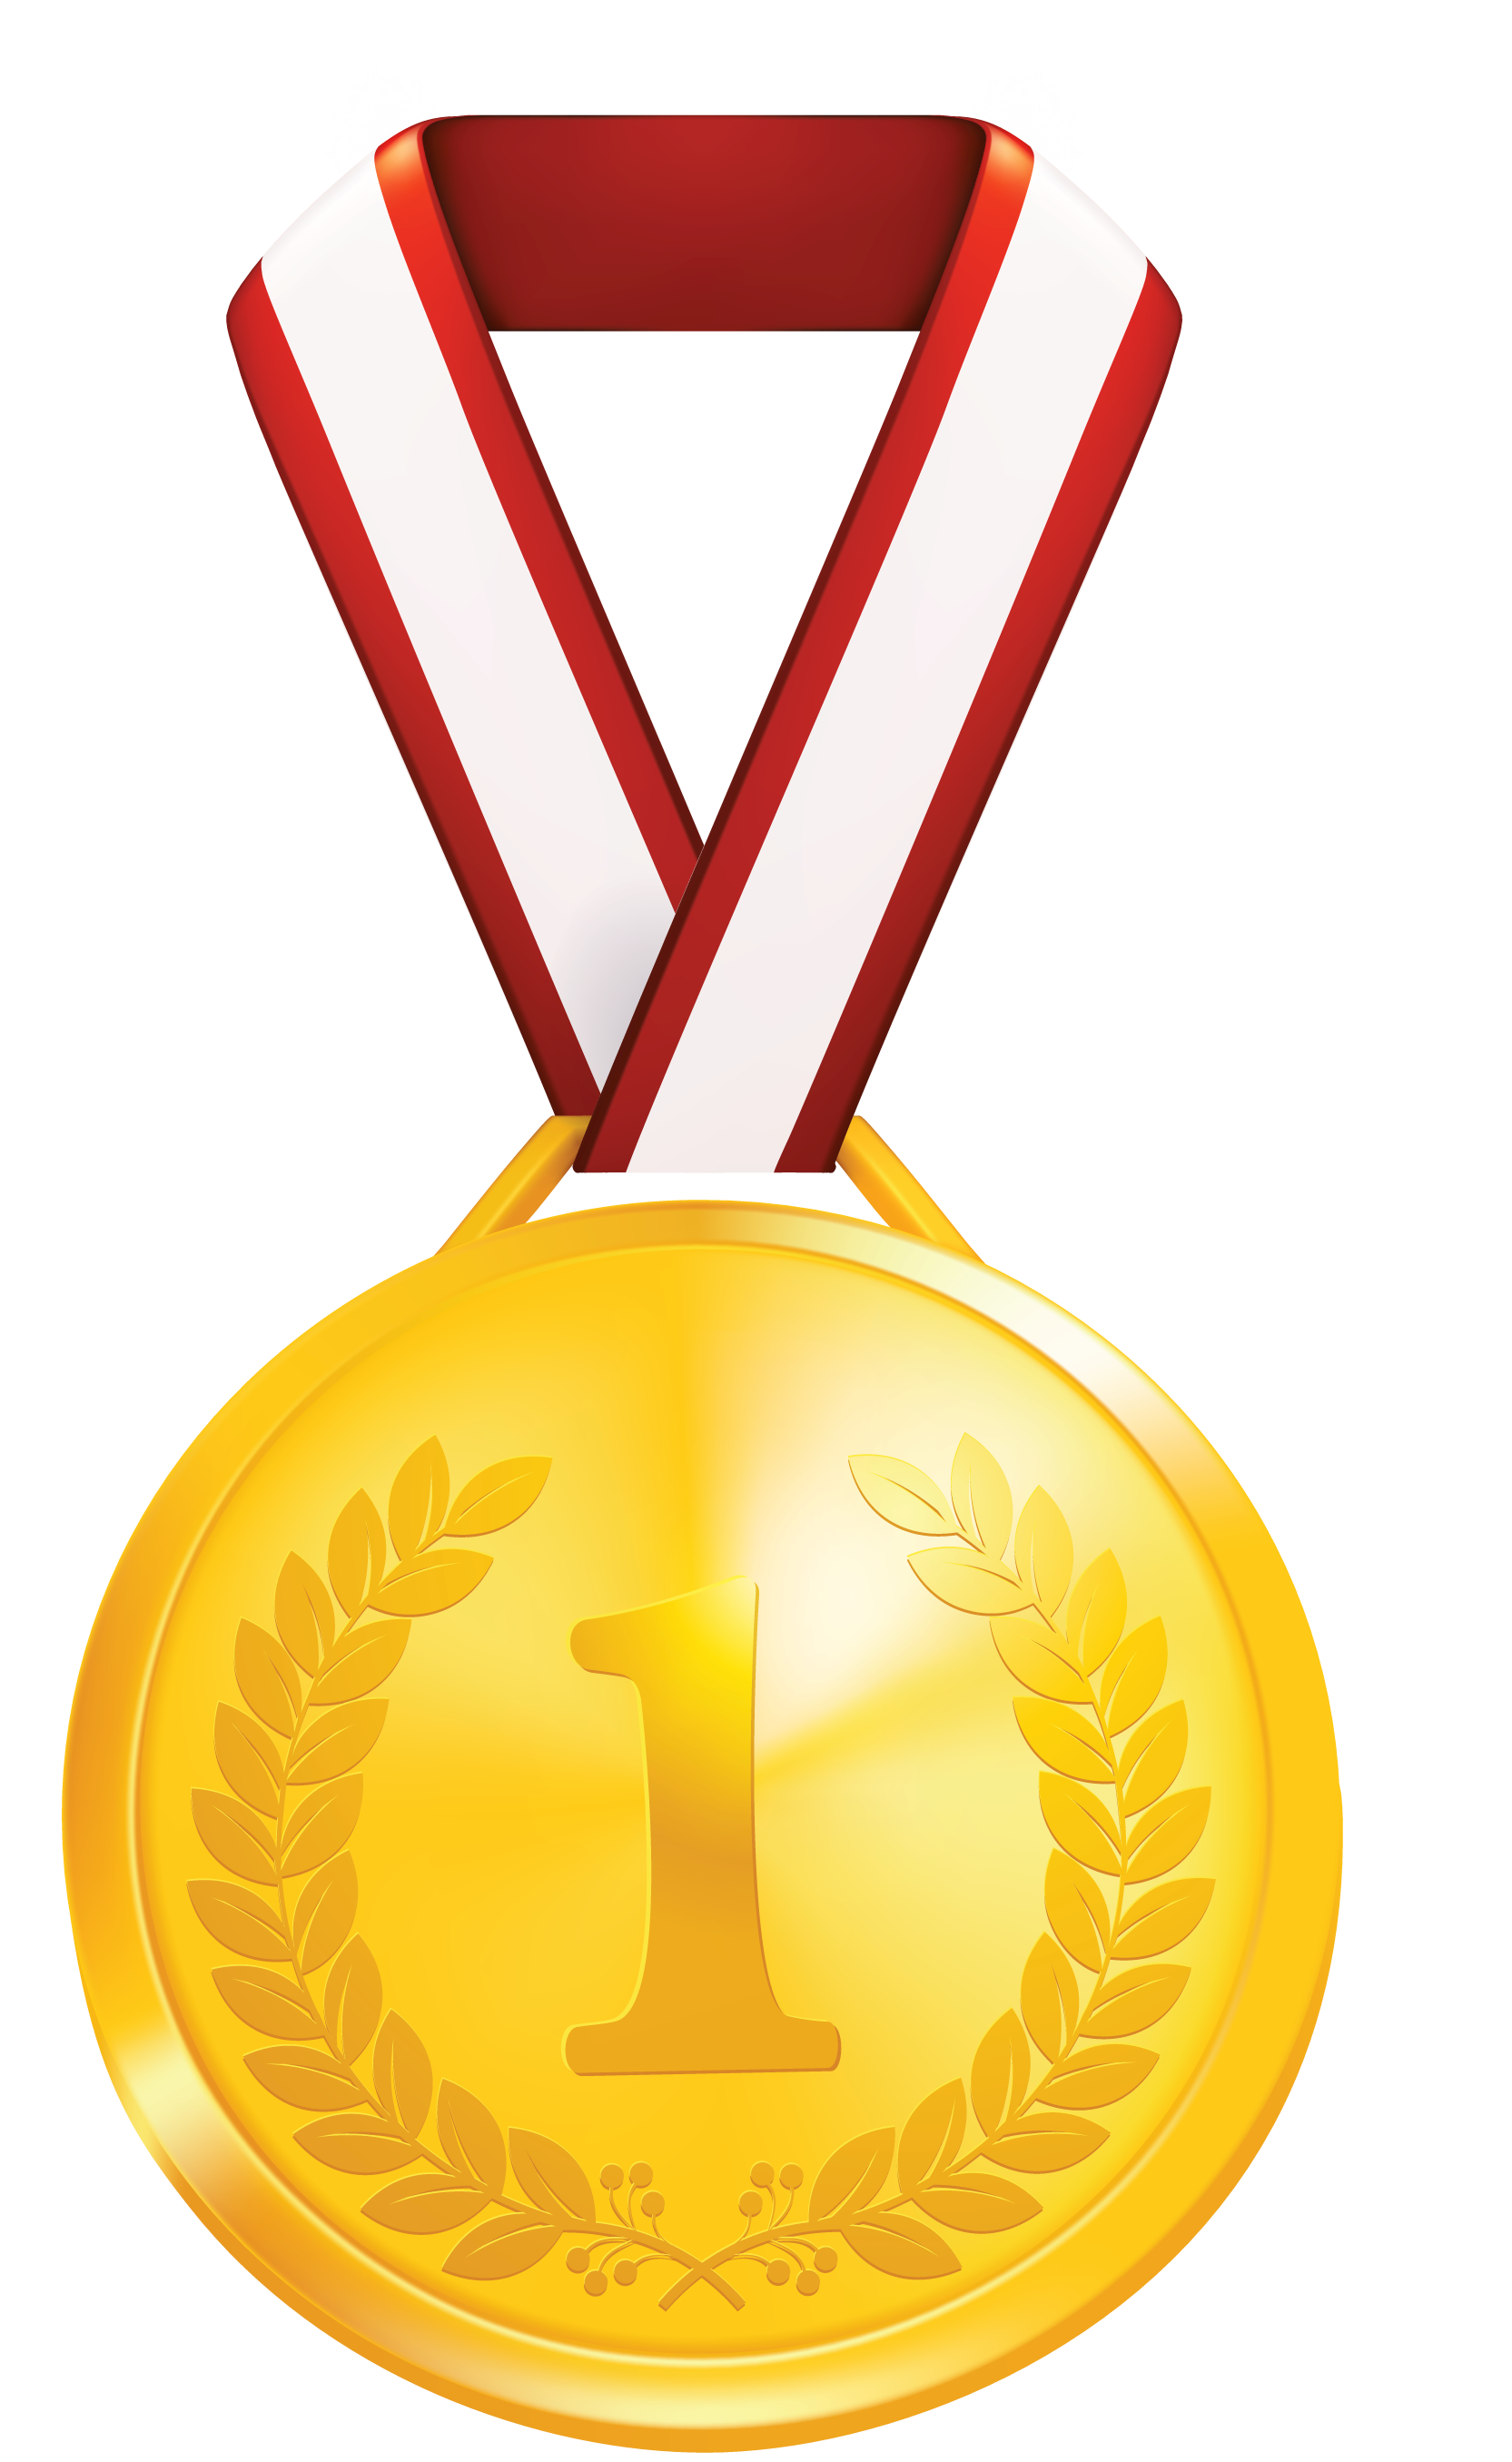 Gold medallion clipart image transparent stock Gold medallion clip art clipart images gallery for free download ... image transparent stock